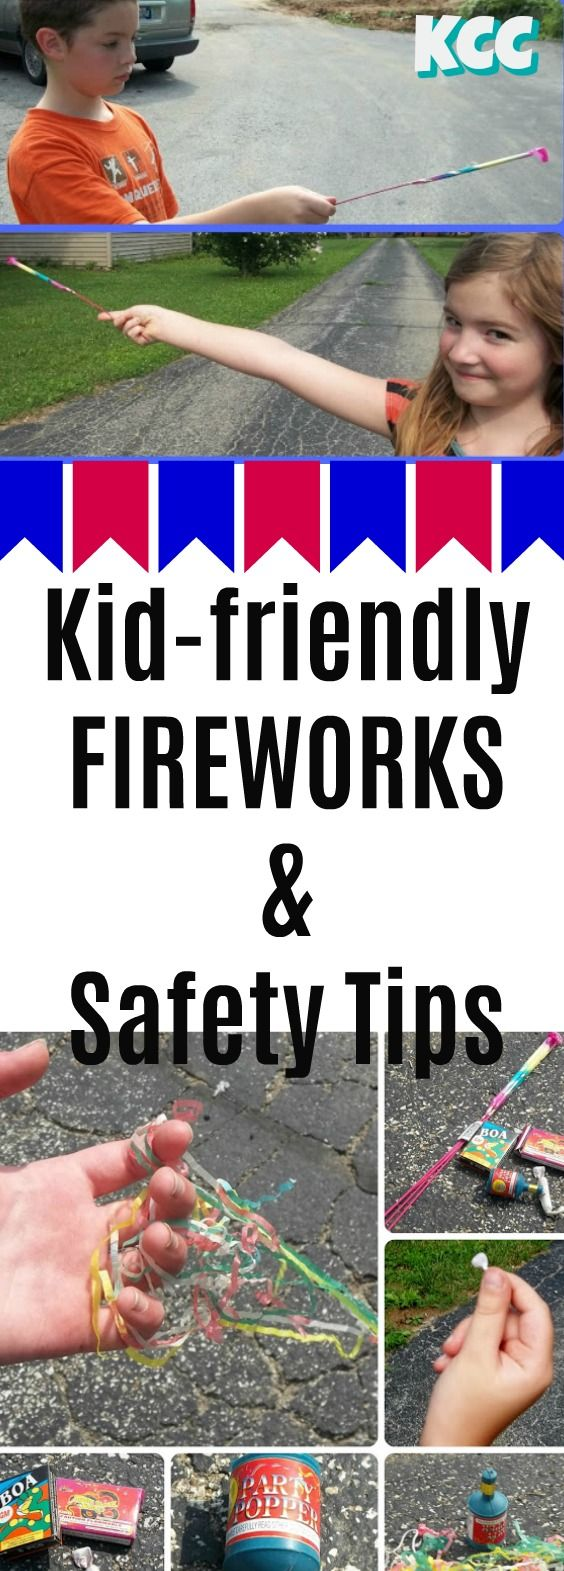 Firework Safety Tips - Fourth of July, Independence Day, Labor Day - Celebrations. Kid-friendly fireworks #kidscreativechaos